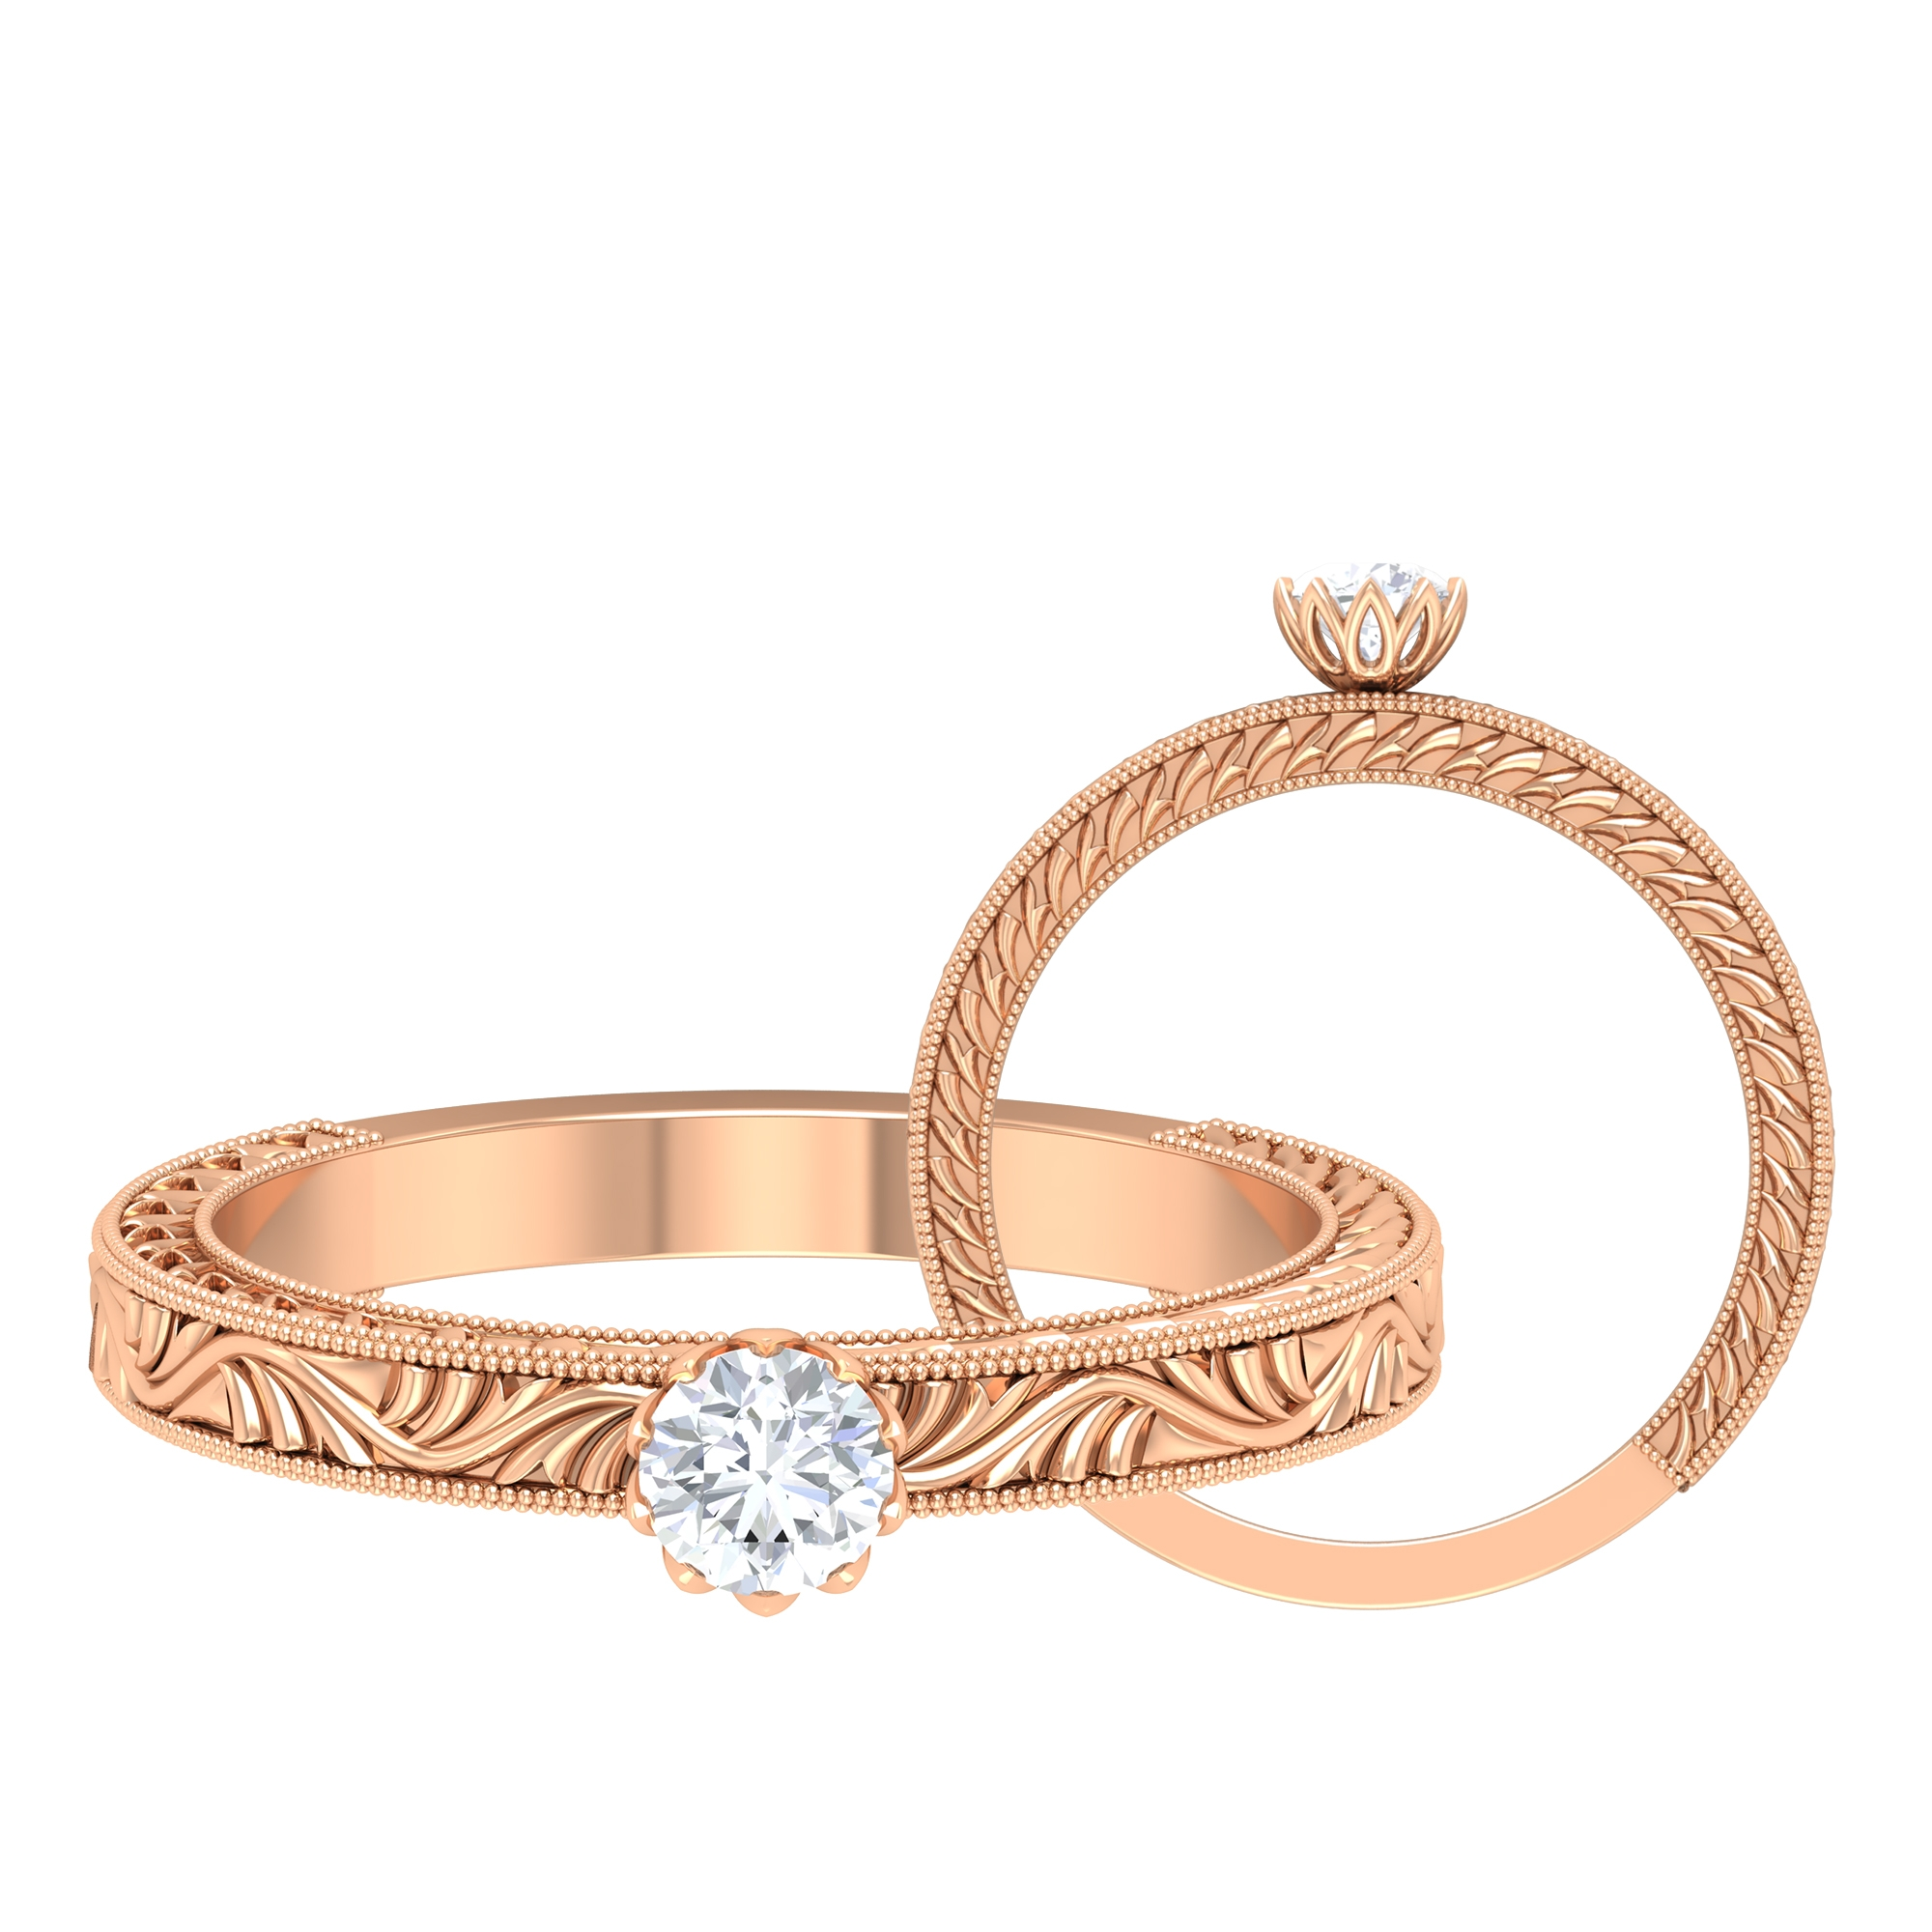 4 MM Round Cut Diamond Solitaire Ring in Lotus Basket Setting with Engraved Details